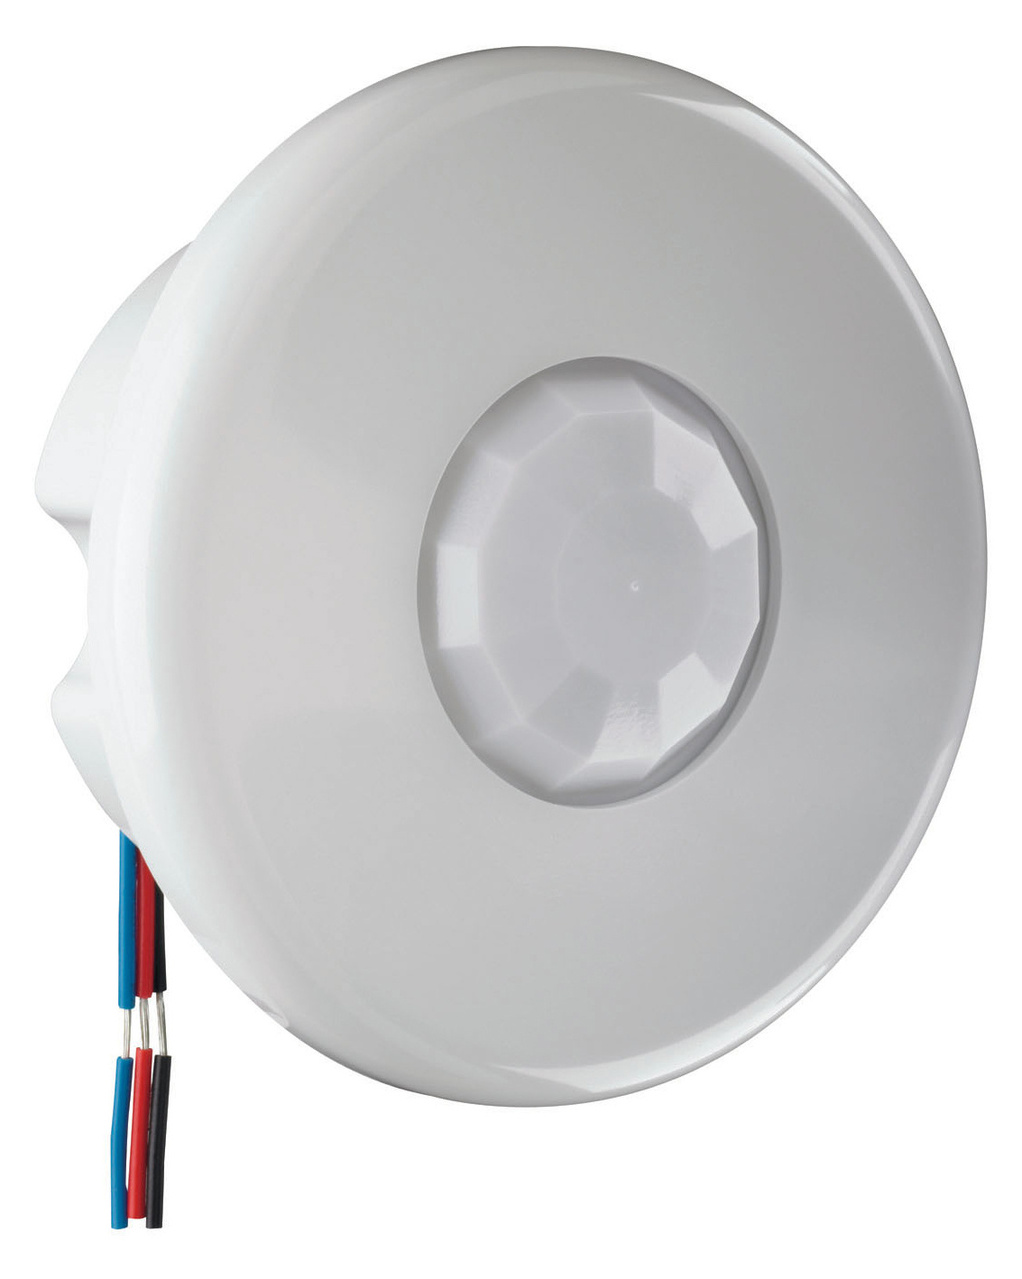 Commercial Occupancy Sensor, CS1200